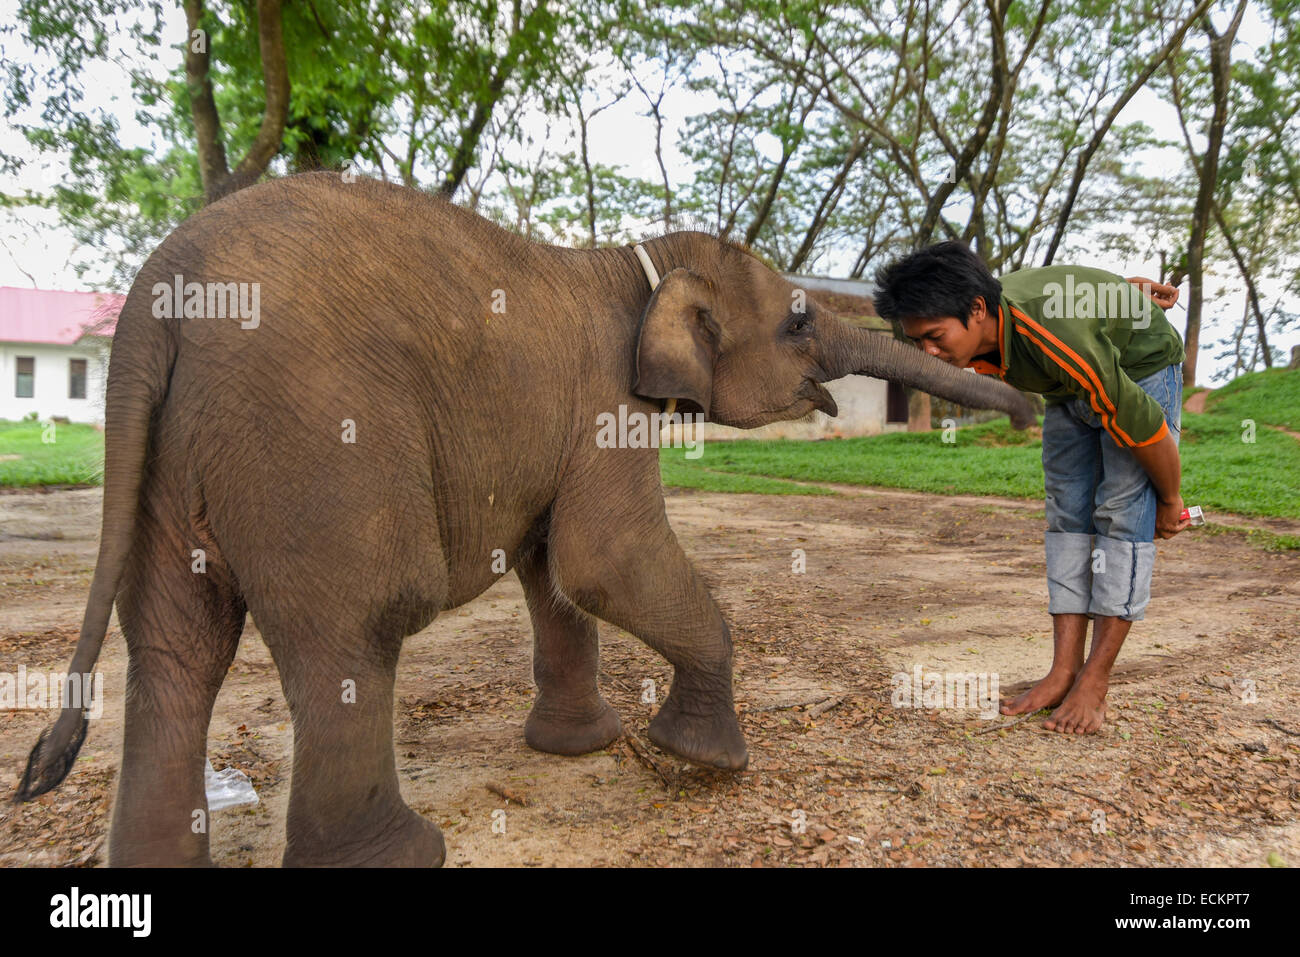 Quality time between a mahout (elephant keeper) and its baby elephant named Yeti in Way Kambas National Park. - Stock Image